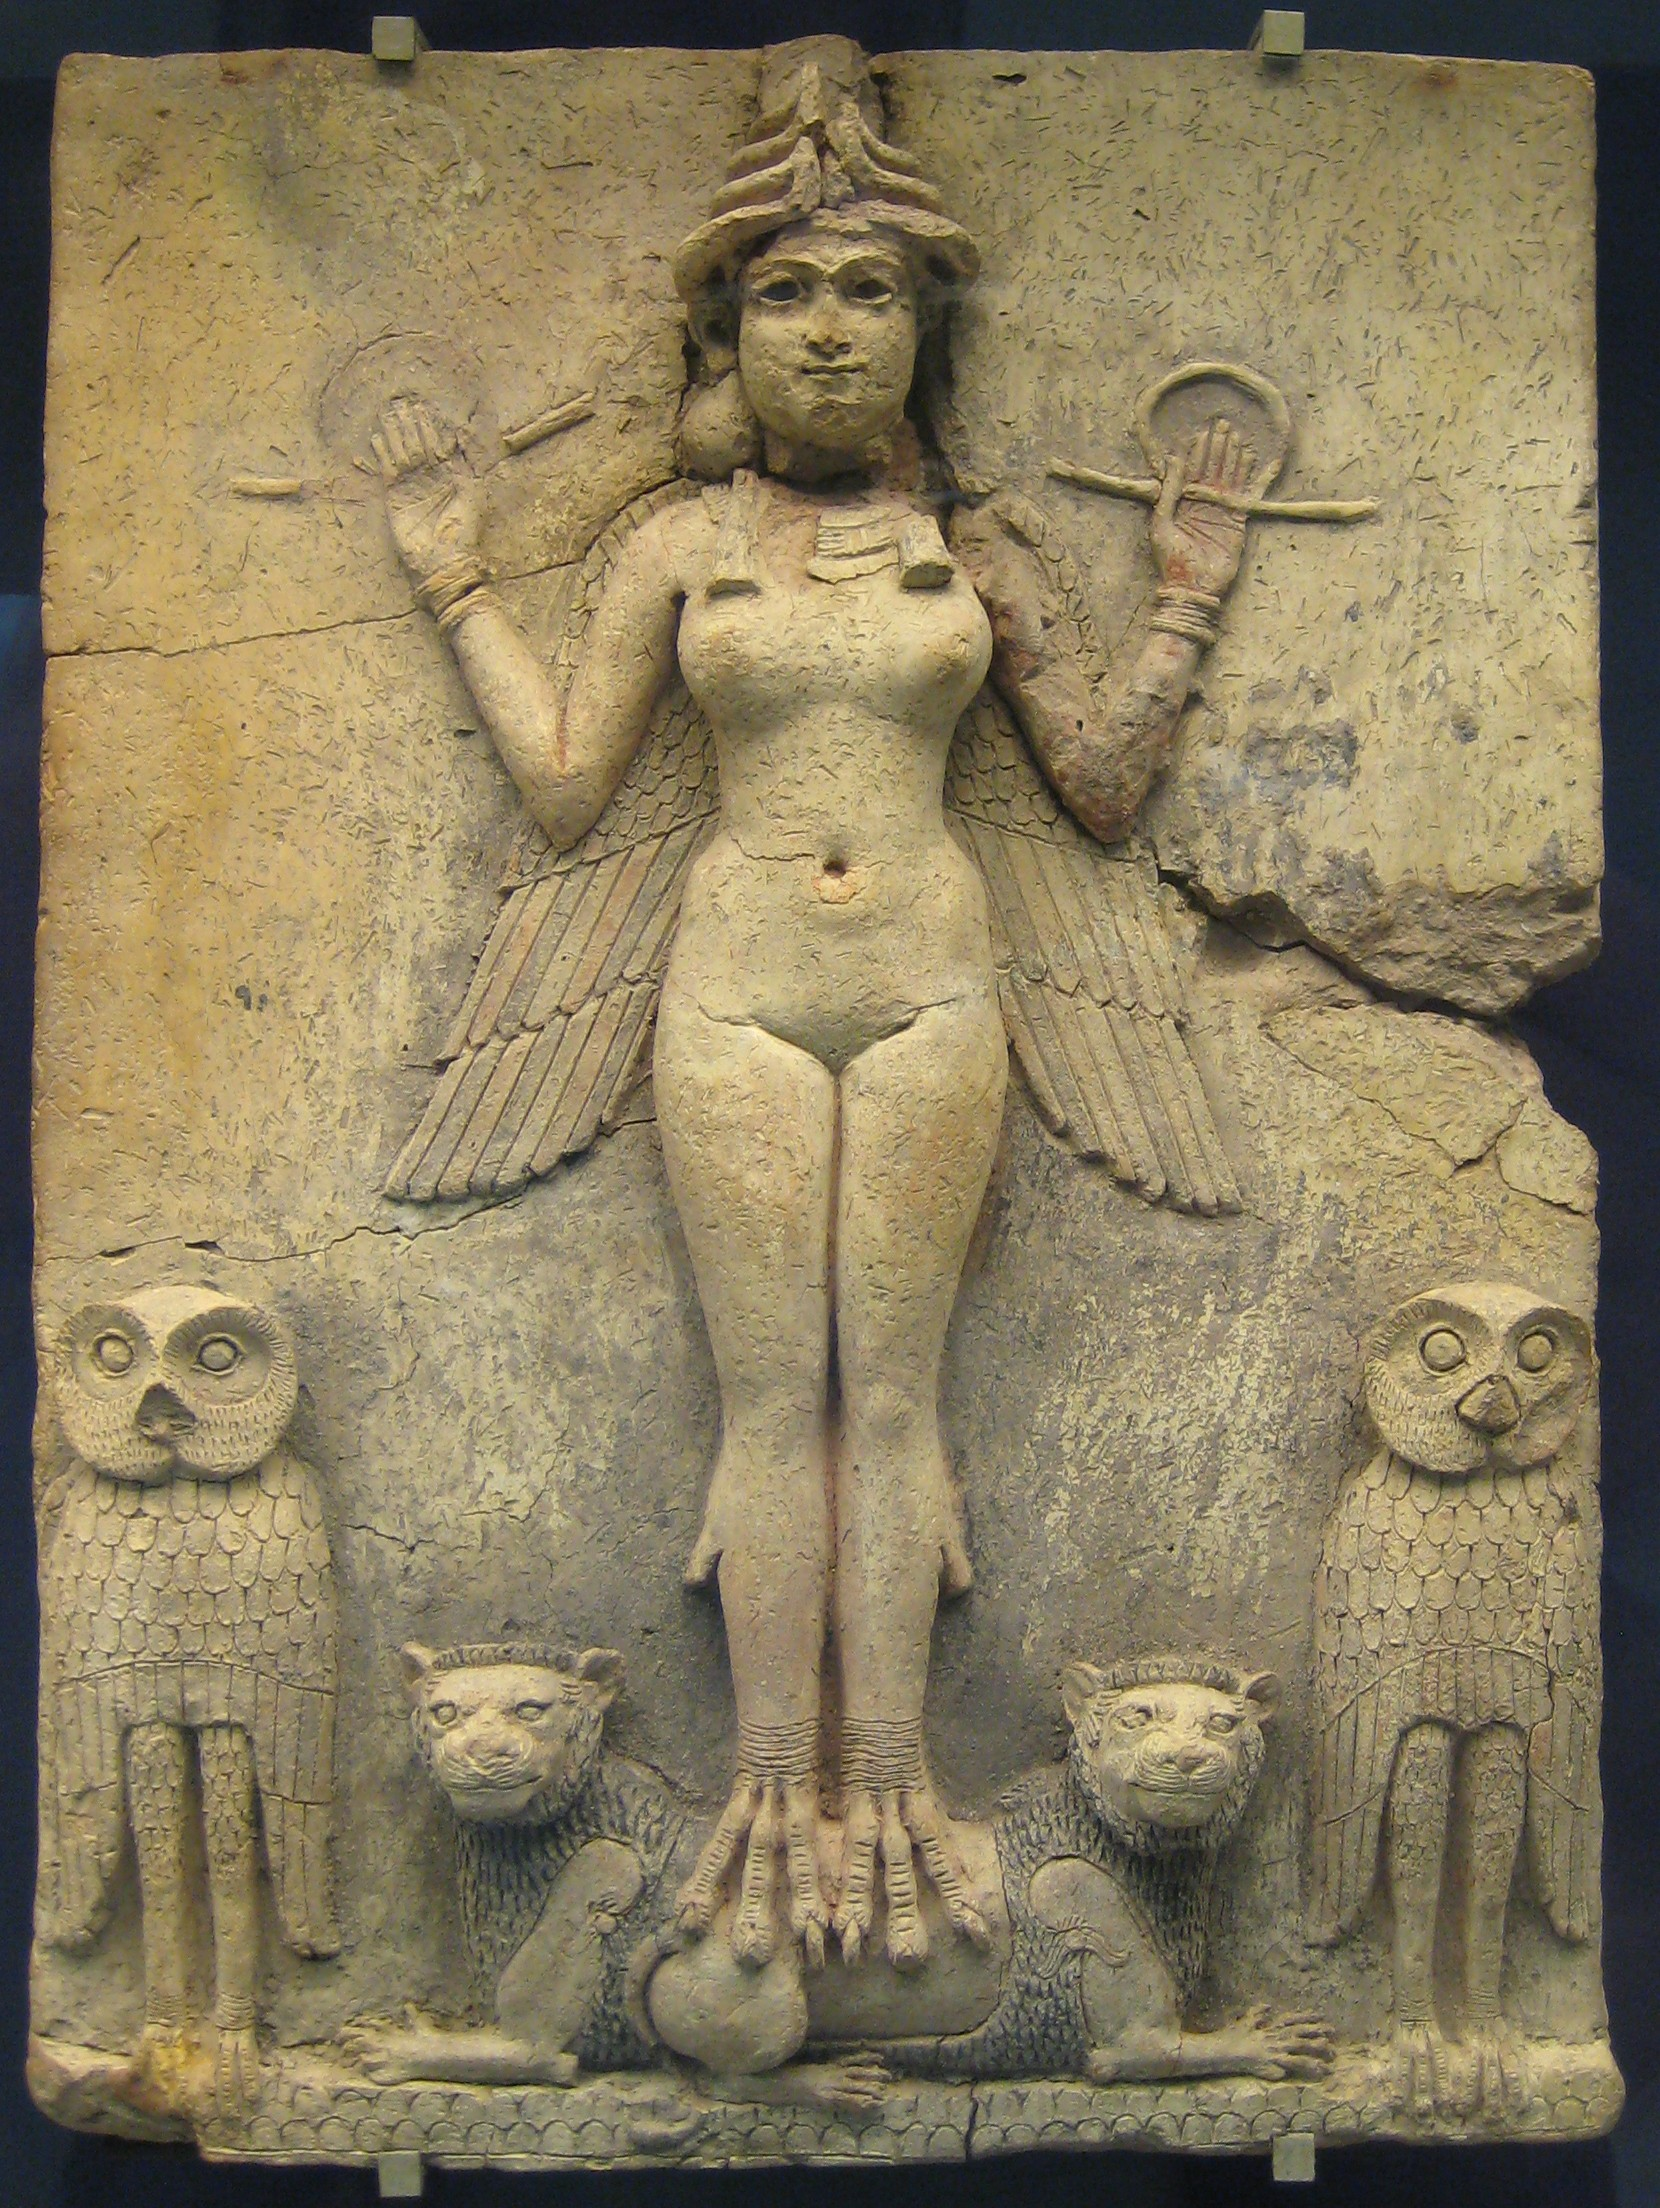 http://upload.wikimedia.org/wikipedia/commons/2/22/British_Museum_Queen_of_the_Night.jpg